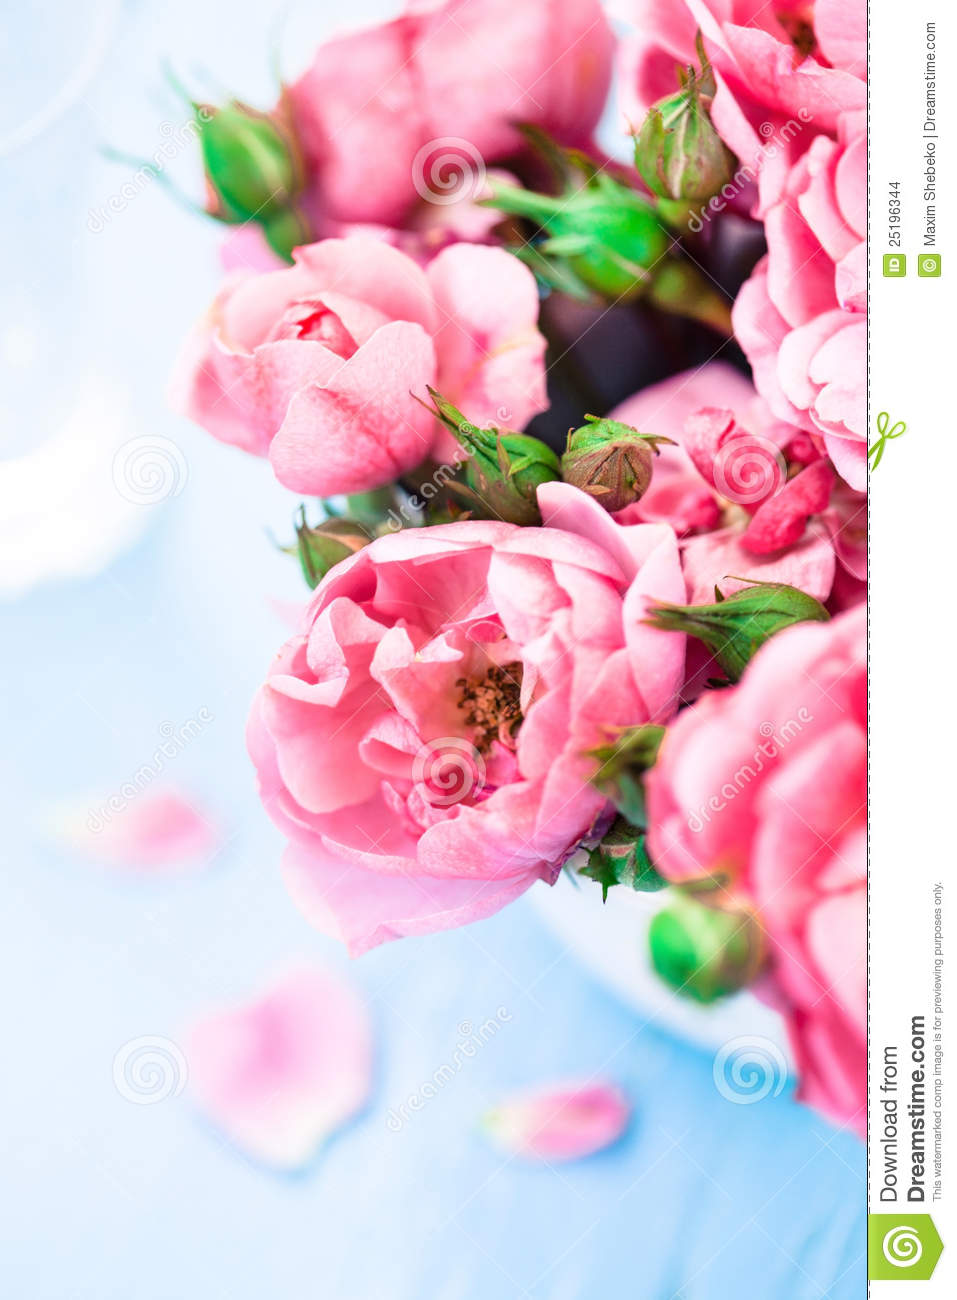 nice flowers stock images  image, Beautiful flower